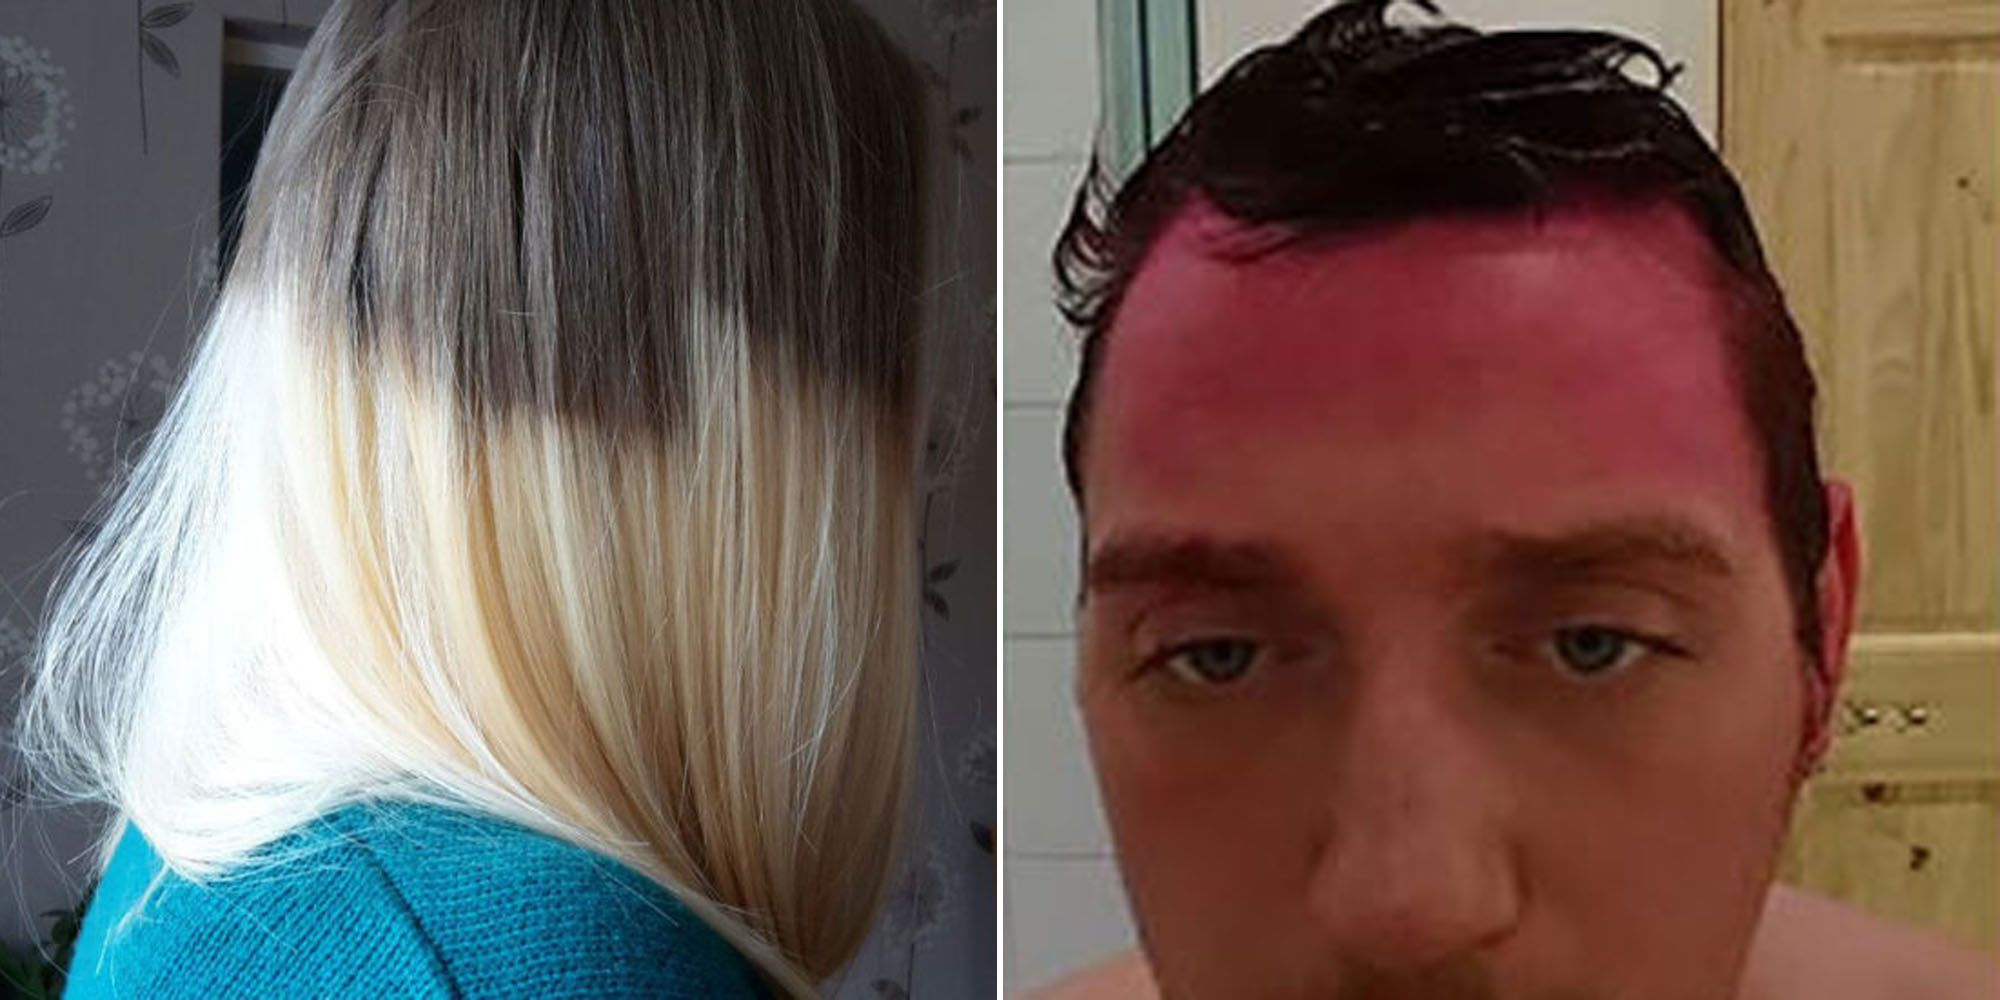 Hilarious Hair Dye Fails Funny Botched Hair Dye Jobs